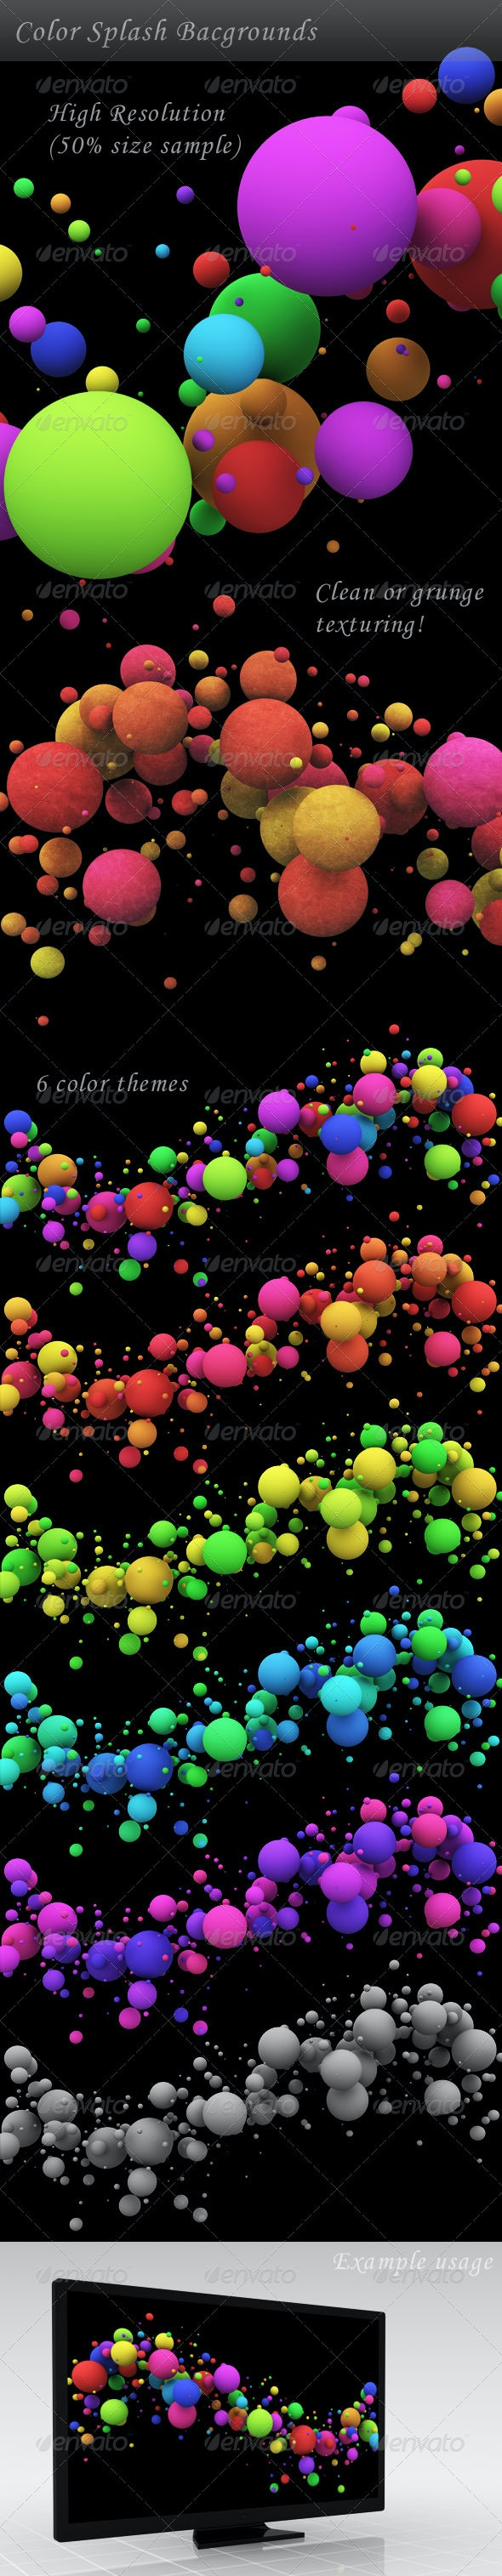 Color Splash Background - Abstract Backgrounds